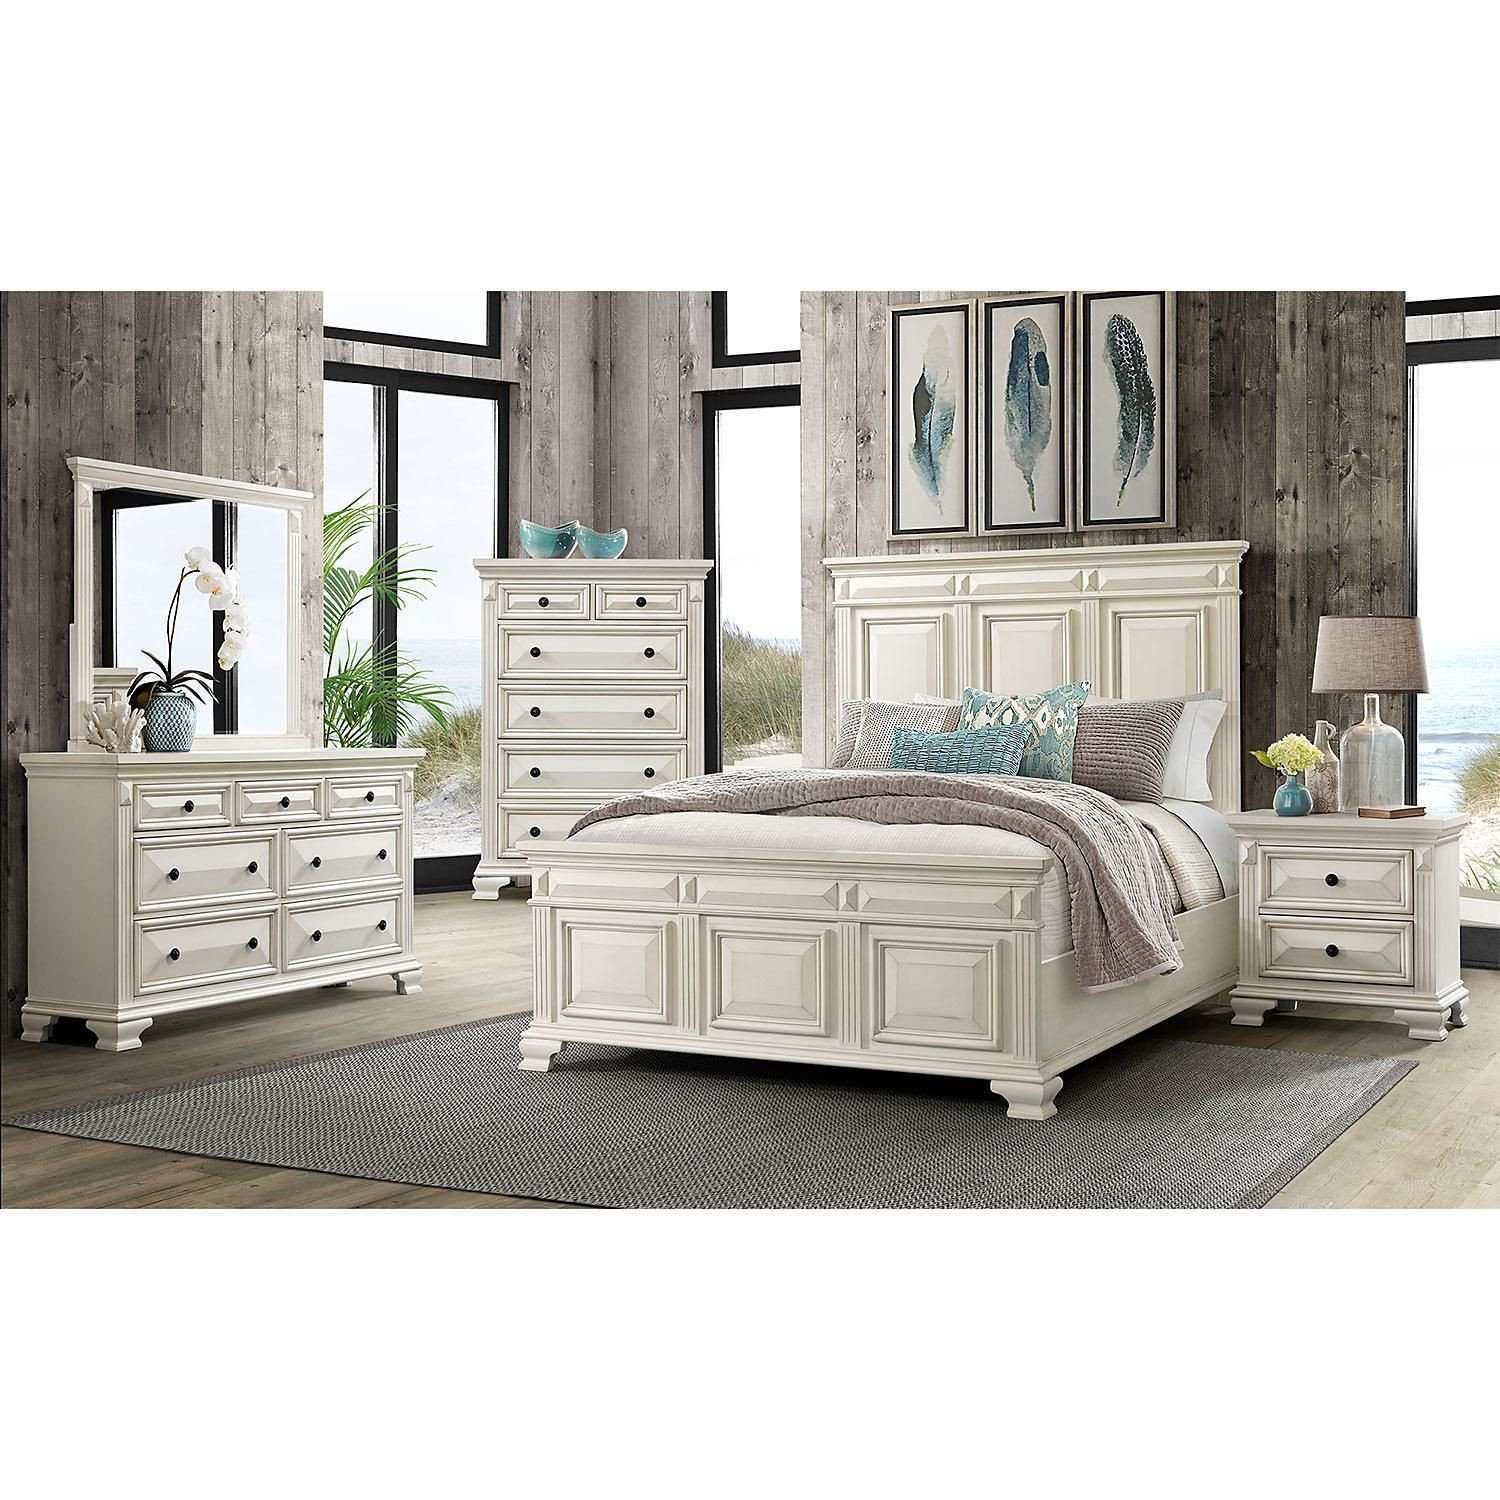 Cheap Queen Size Bedroom Set Awesome $1599 00 society Den Trent Panel 6 Piece King Bedroom Set